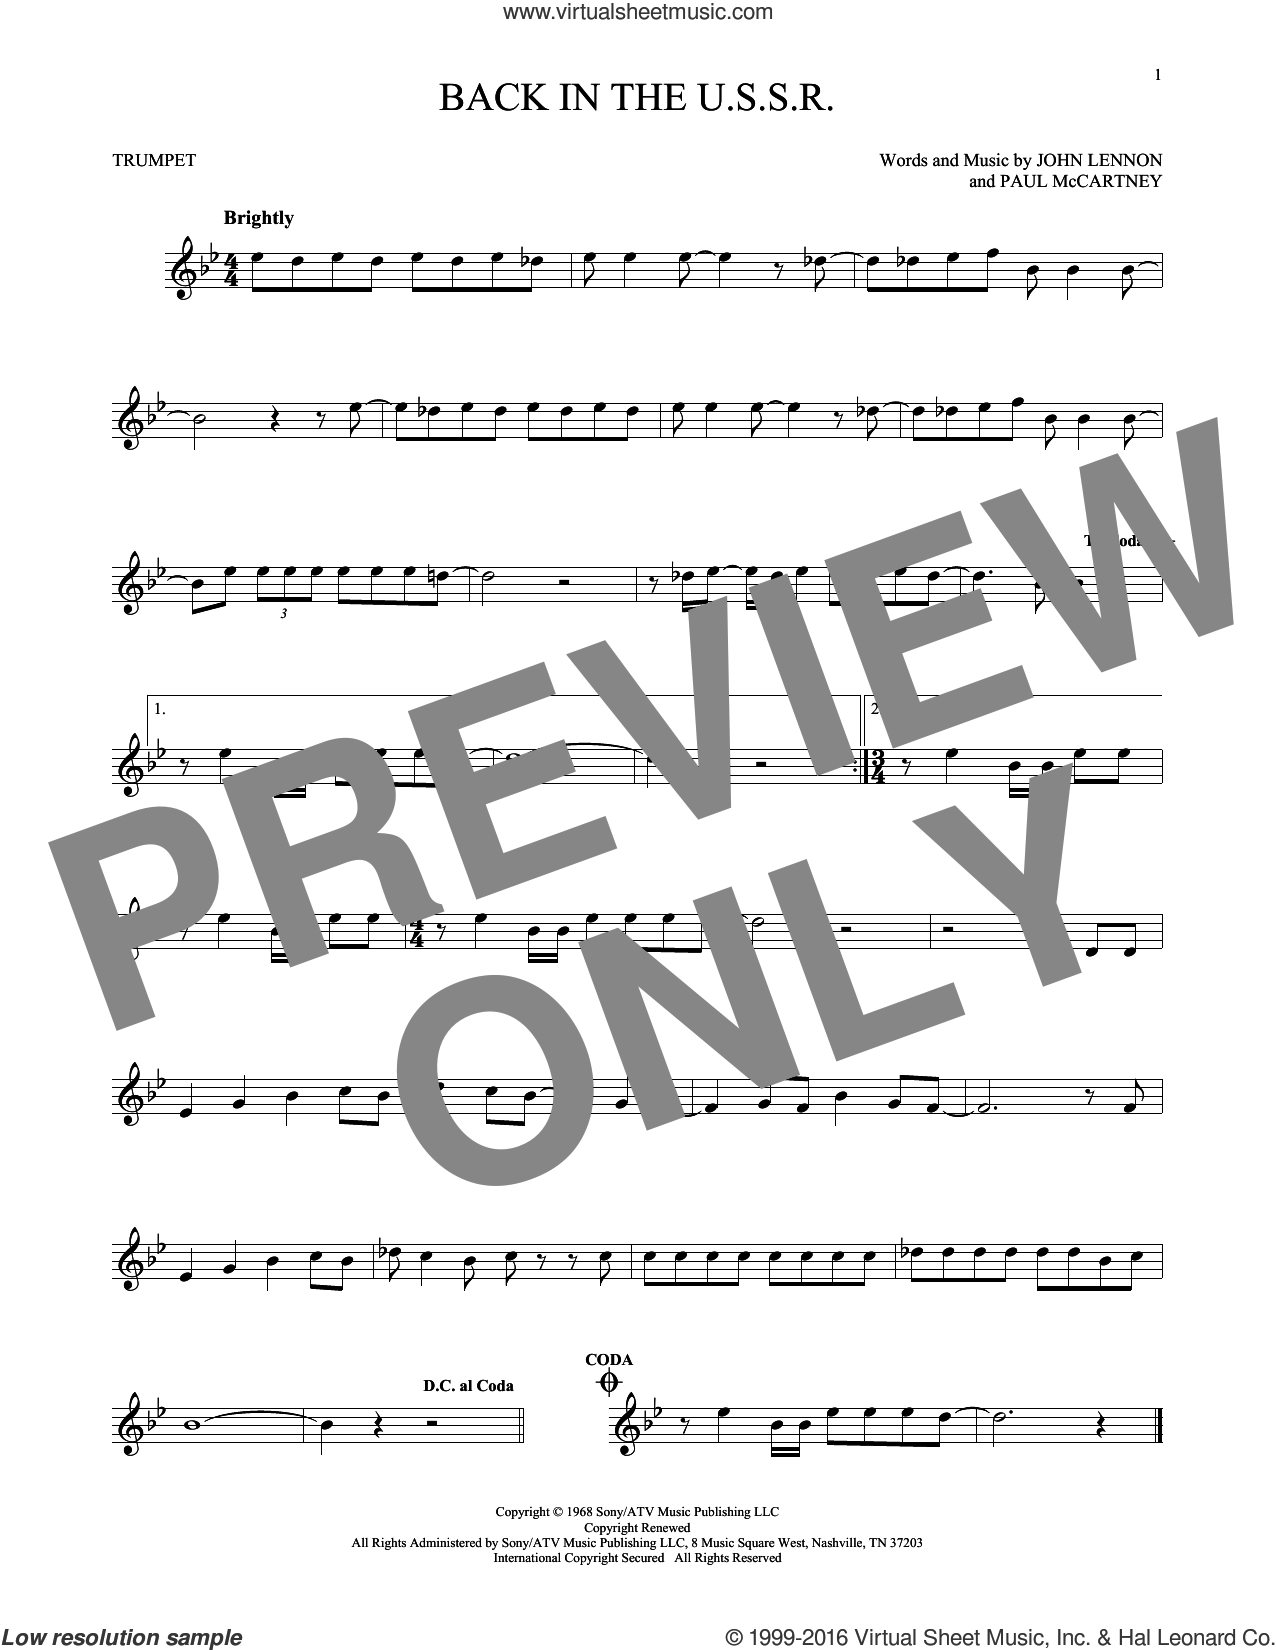 Back In The U.S.S.R. sheet music for trumpet solo by Paul McCartney, The Beatles and John Lennon. Score Image Preview.